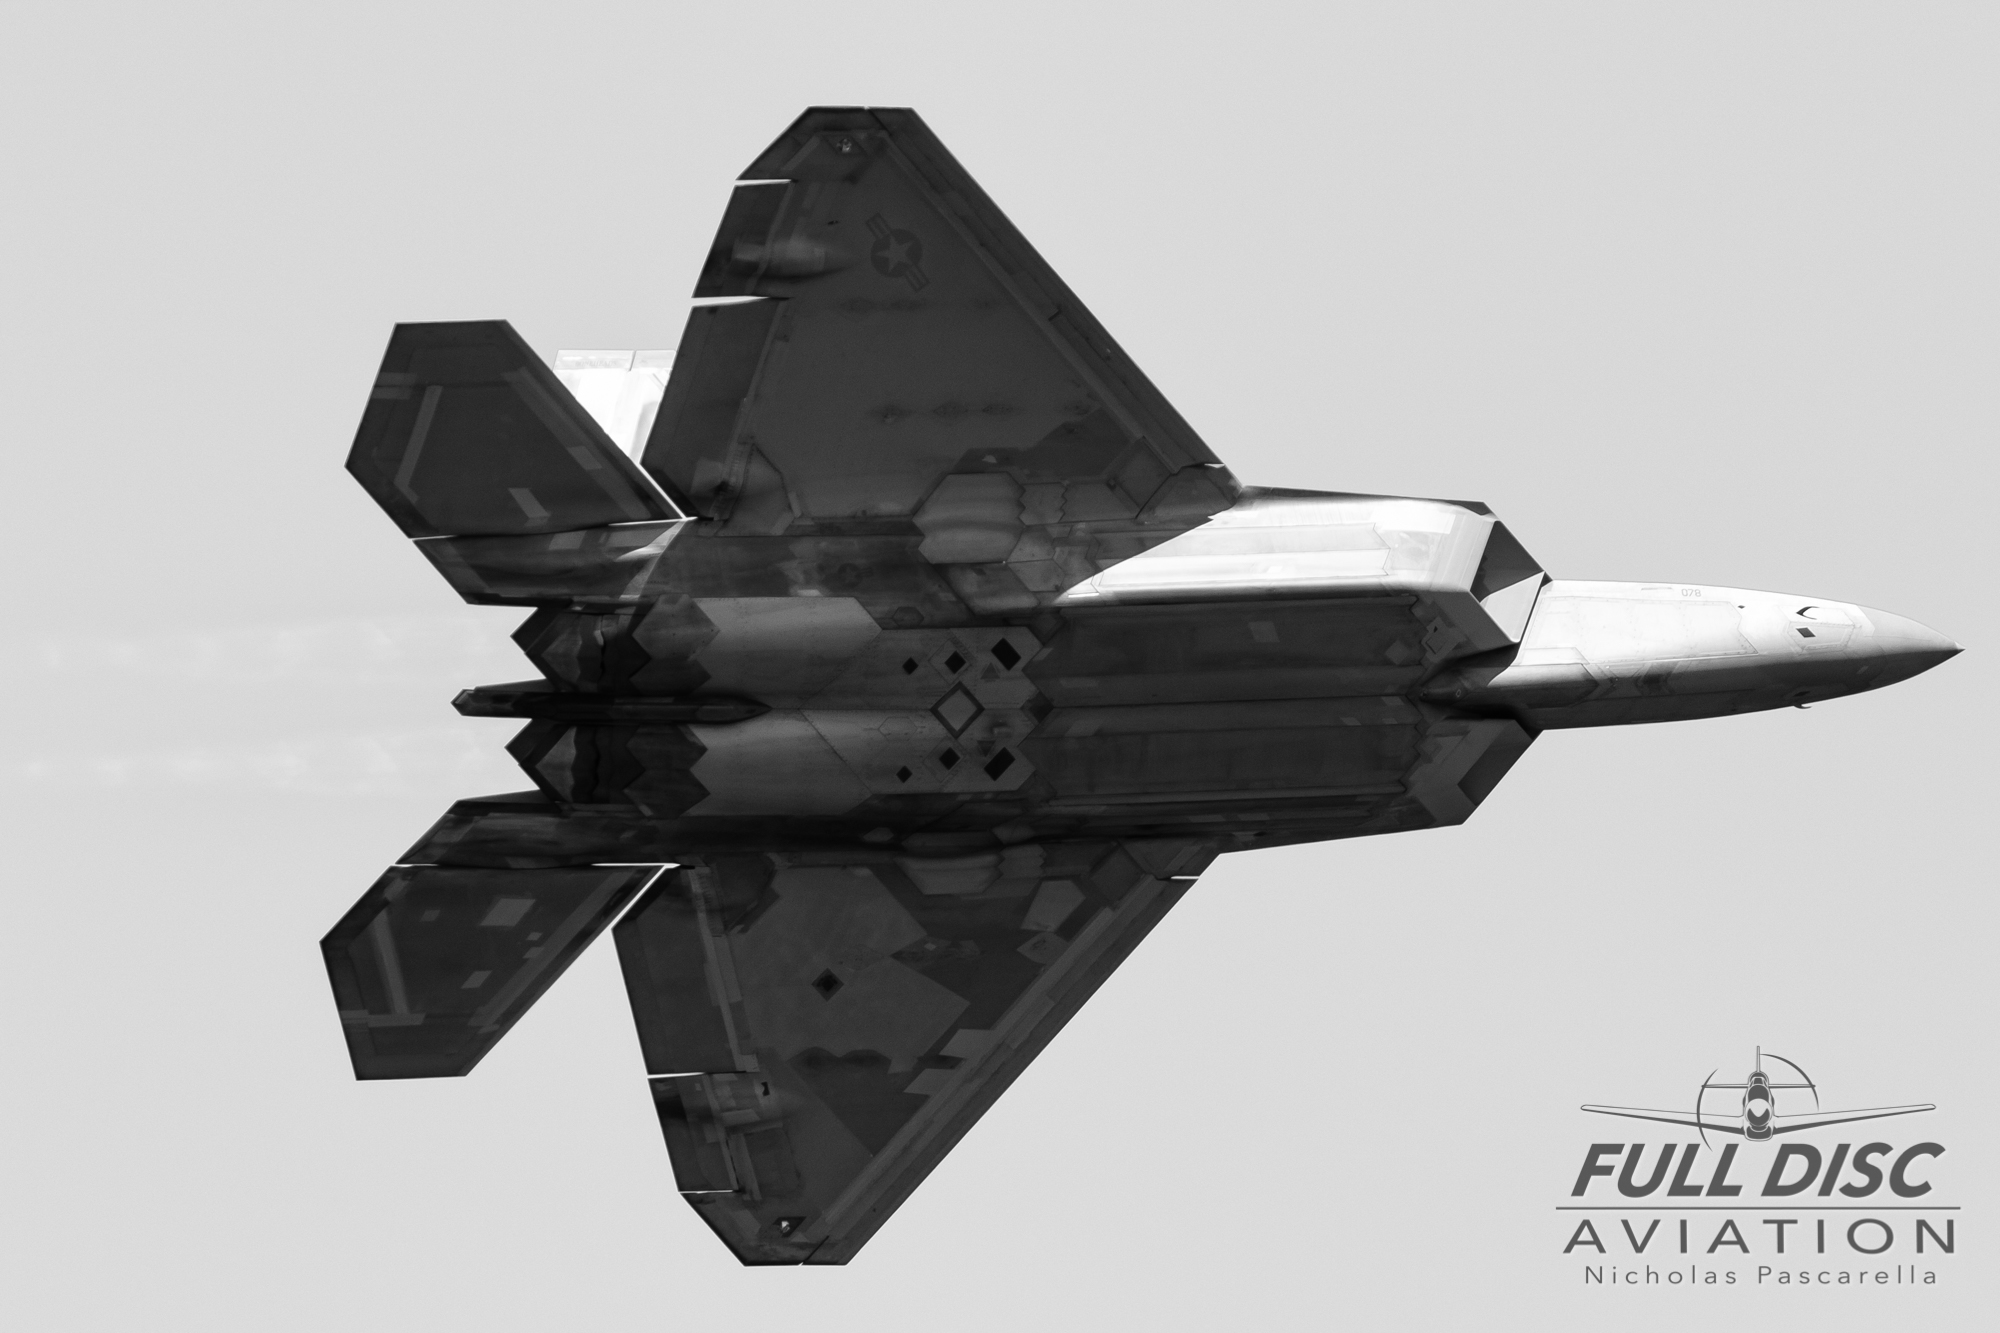 f22_bluechannel_blackandwhite_f22raptordemoteam_nickpascarella_fulldiscaviation_r.jpg